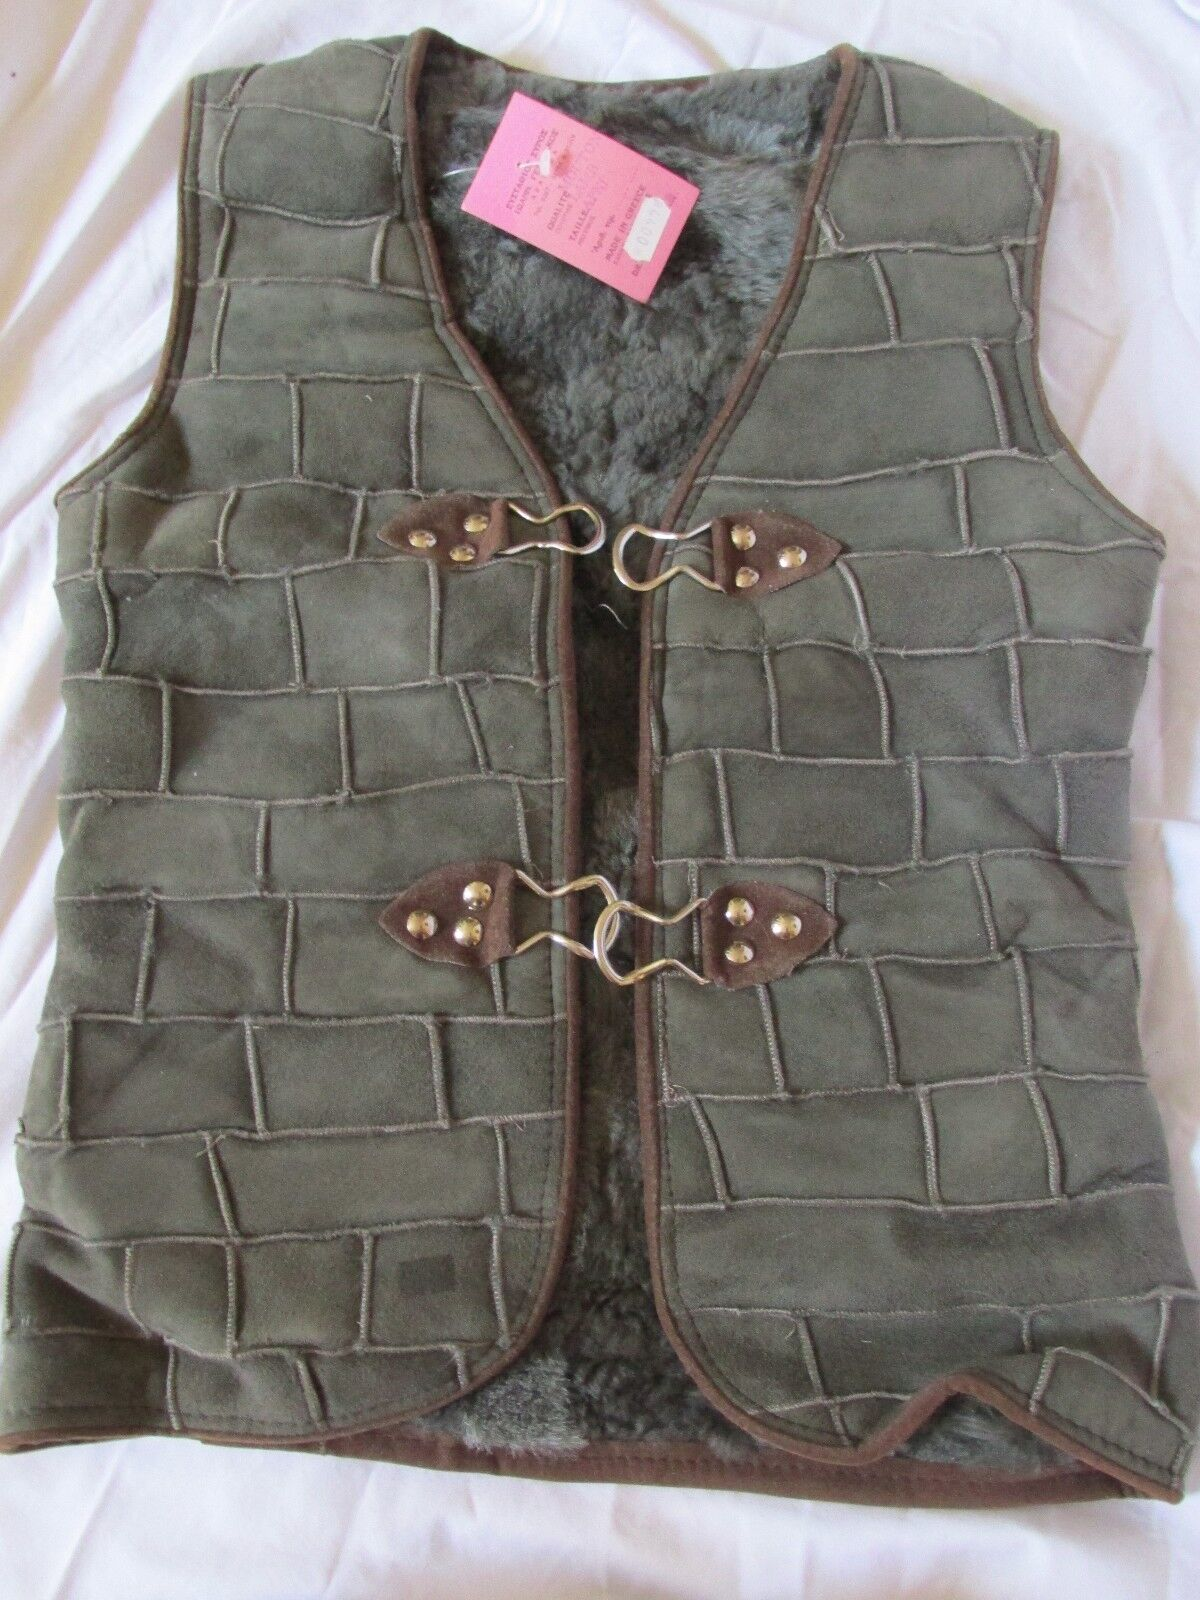 New Women's Mouton Lamb Apni Fur Vest Suede Leather Olive Green Greece Small